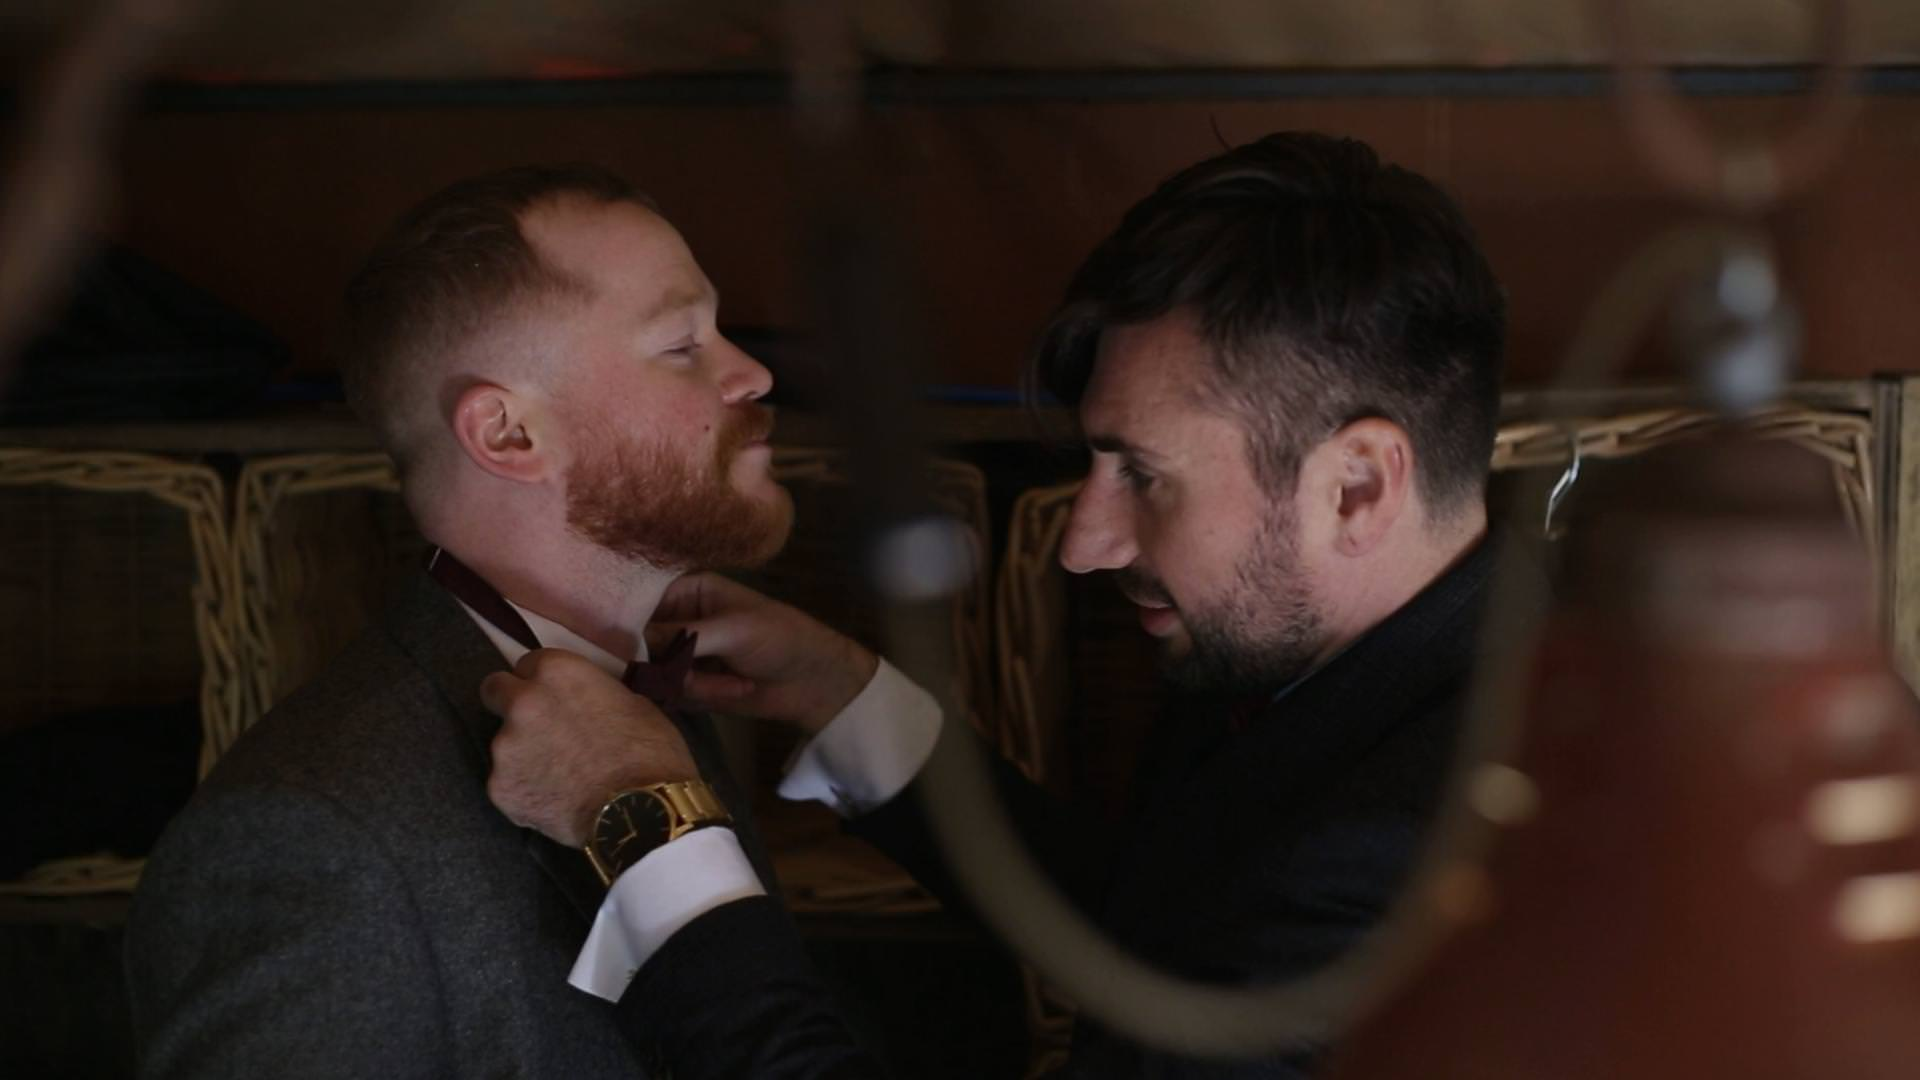 the groom sorts out a best mans bow tie